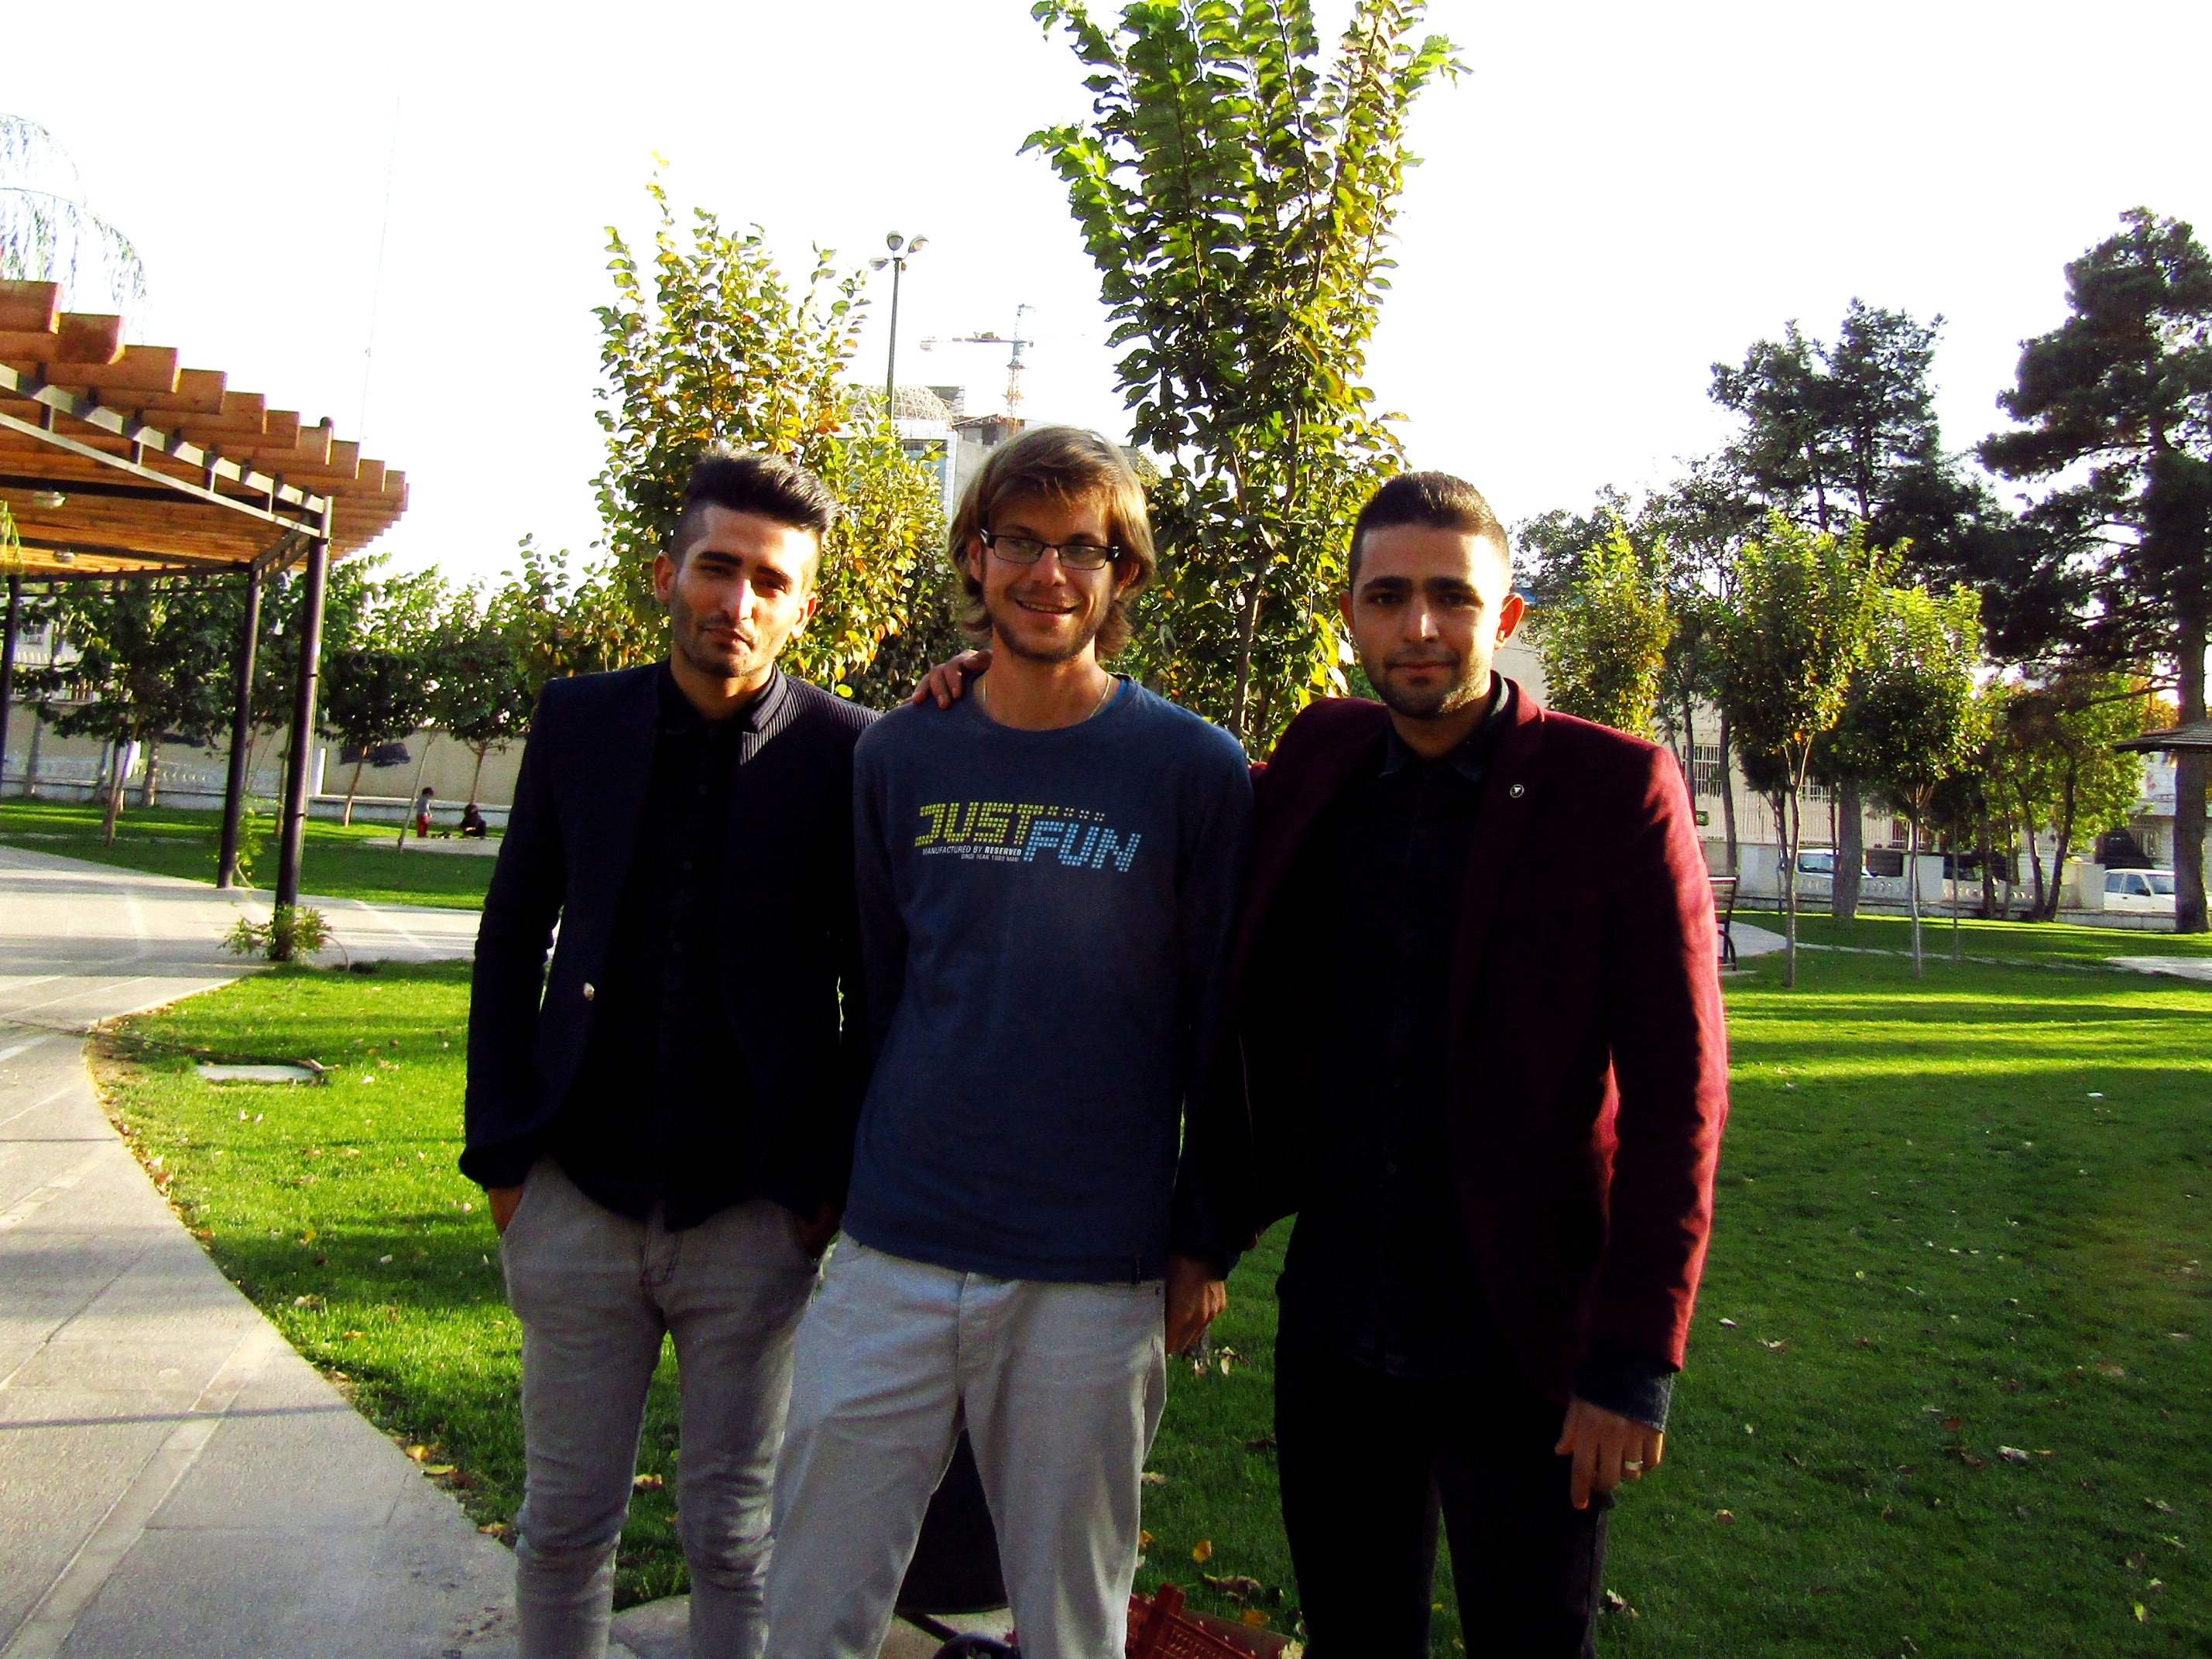 Not the first time locals wanted to take a picture with me [in Qazvin]